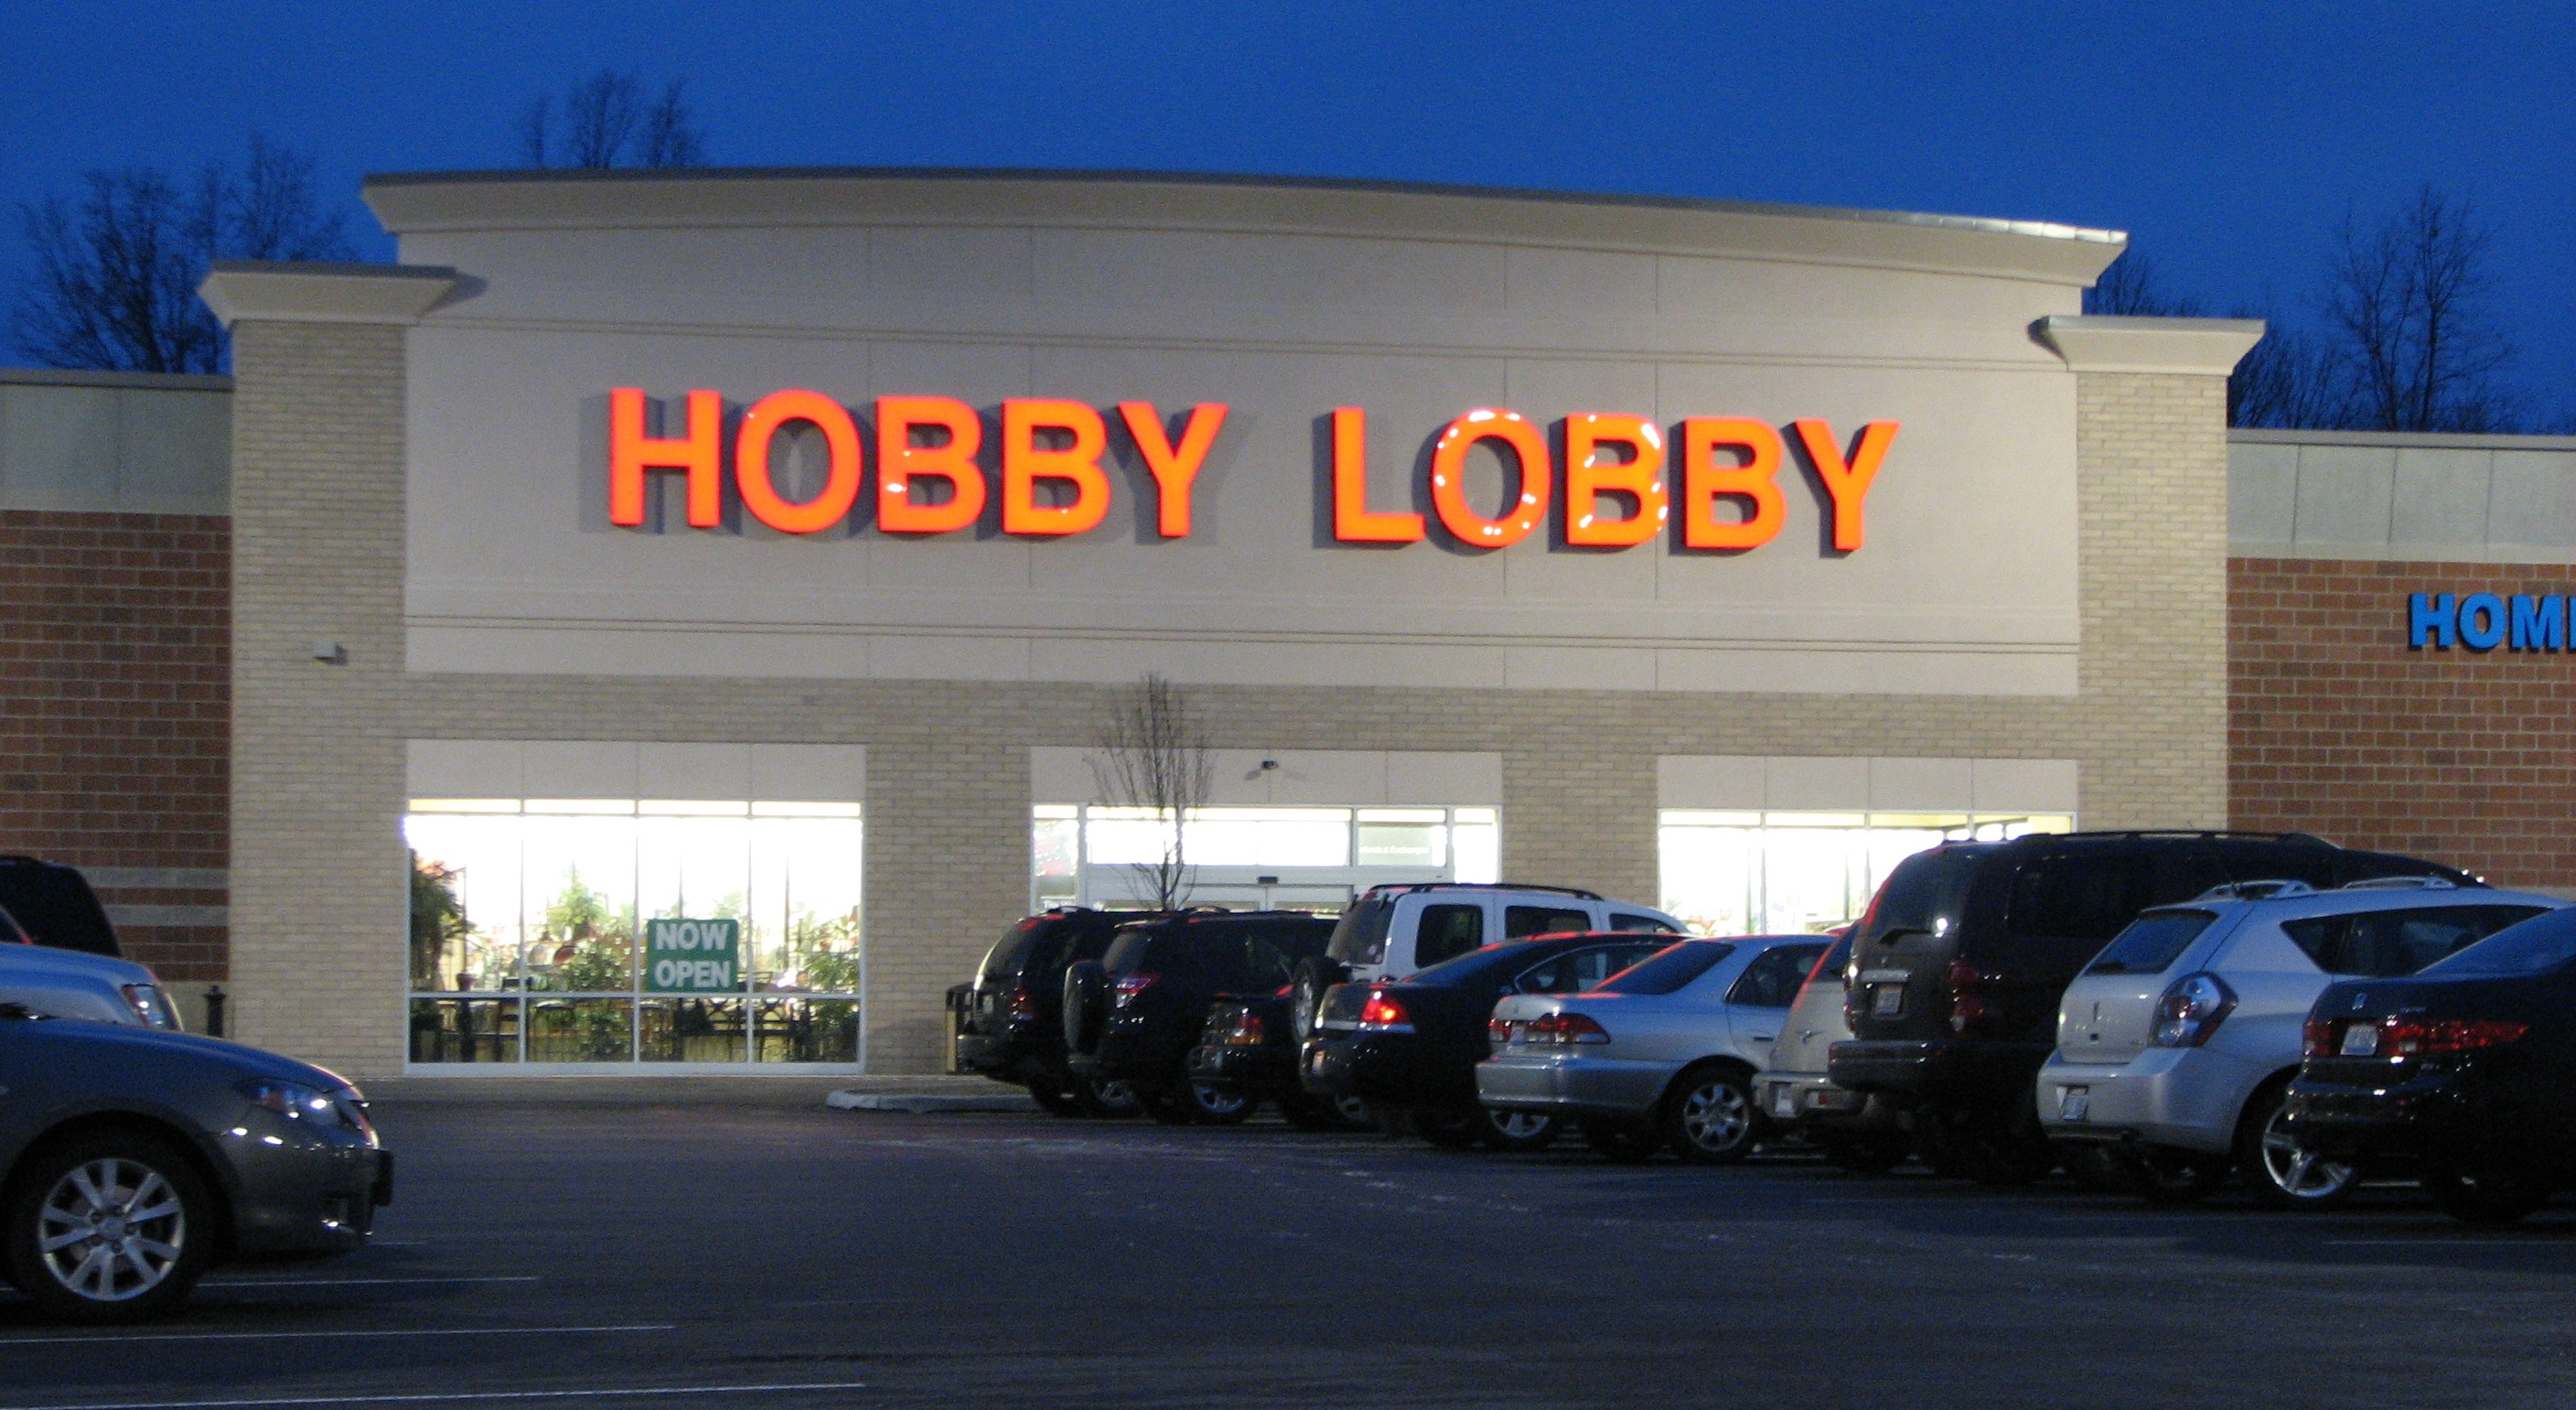 Image of a Hobby Lobby store.